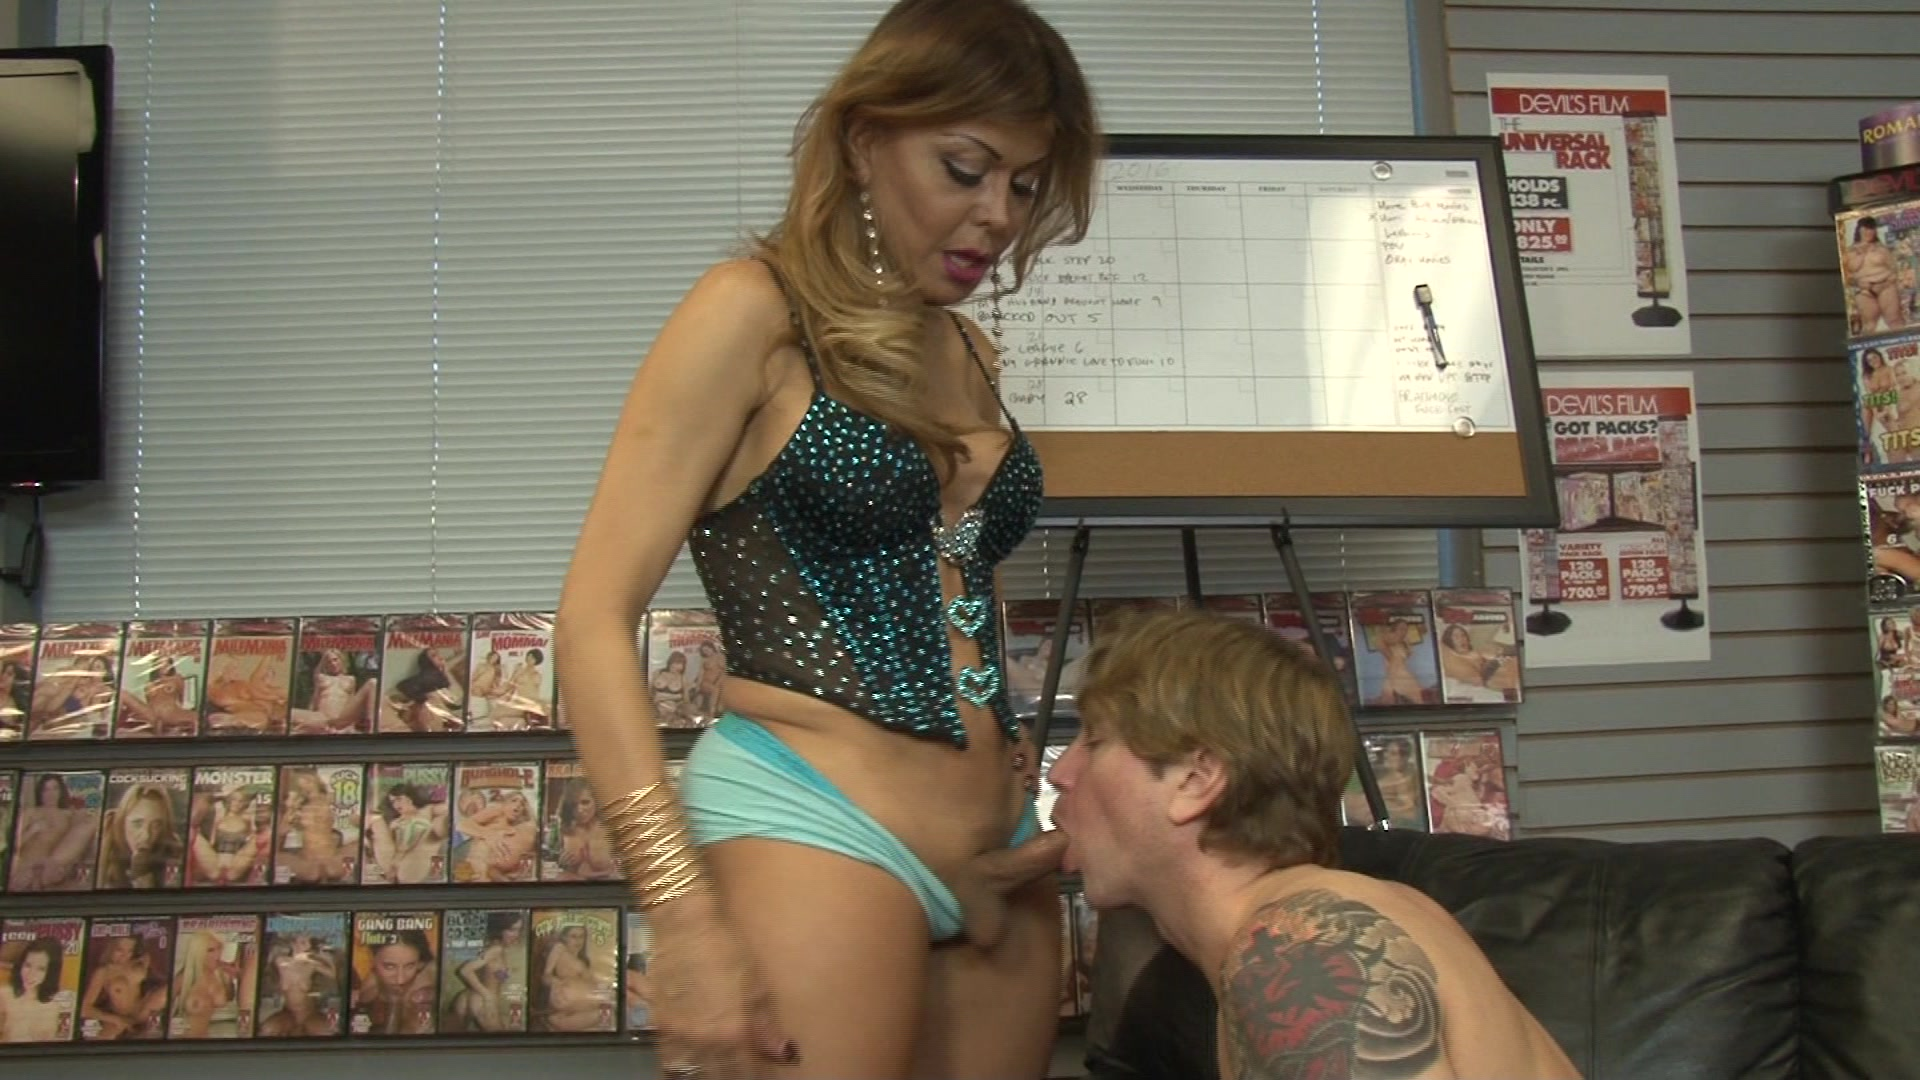 you milf creampie tube video confirm. All above told